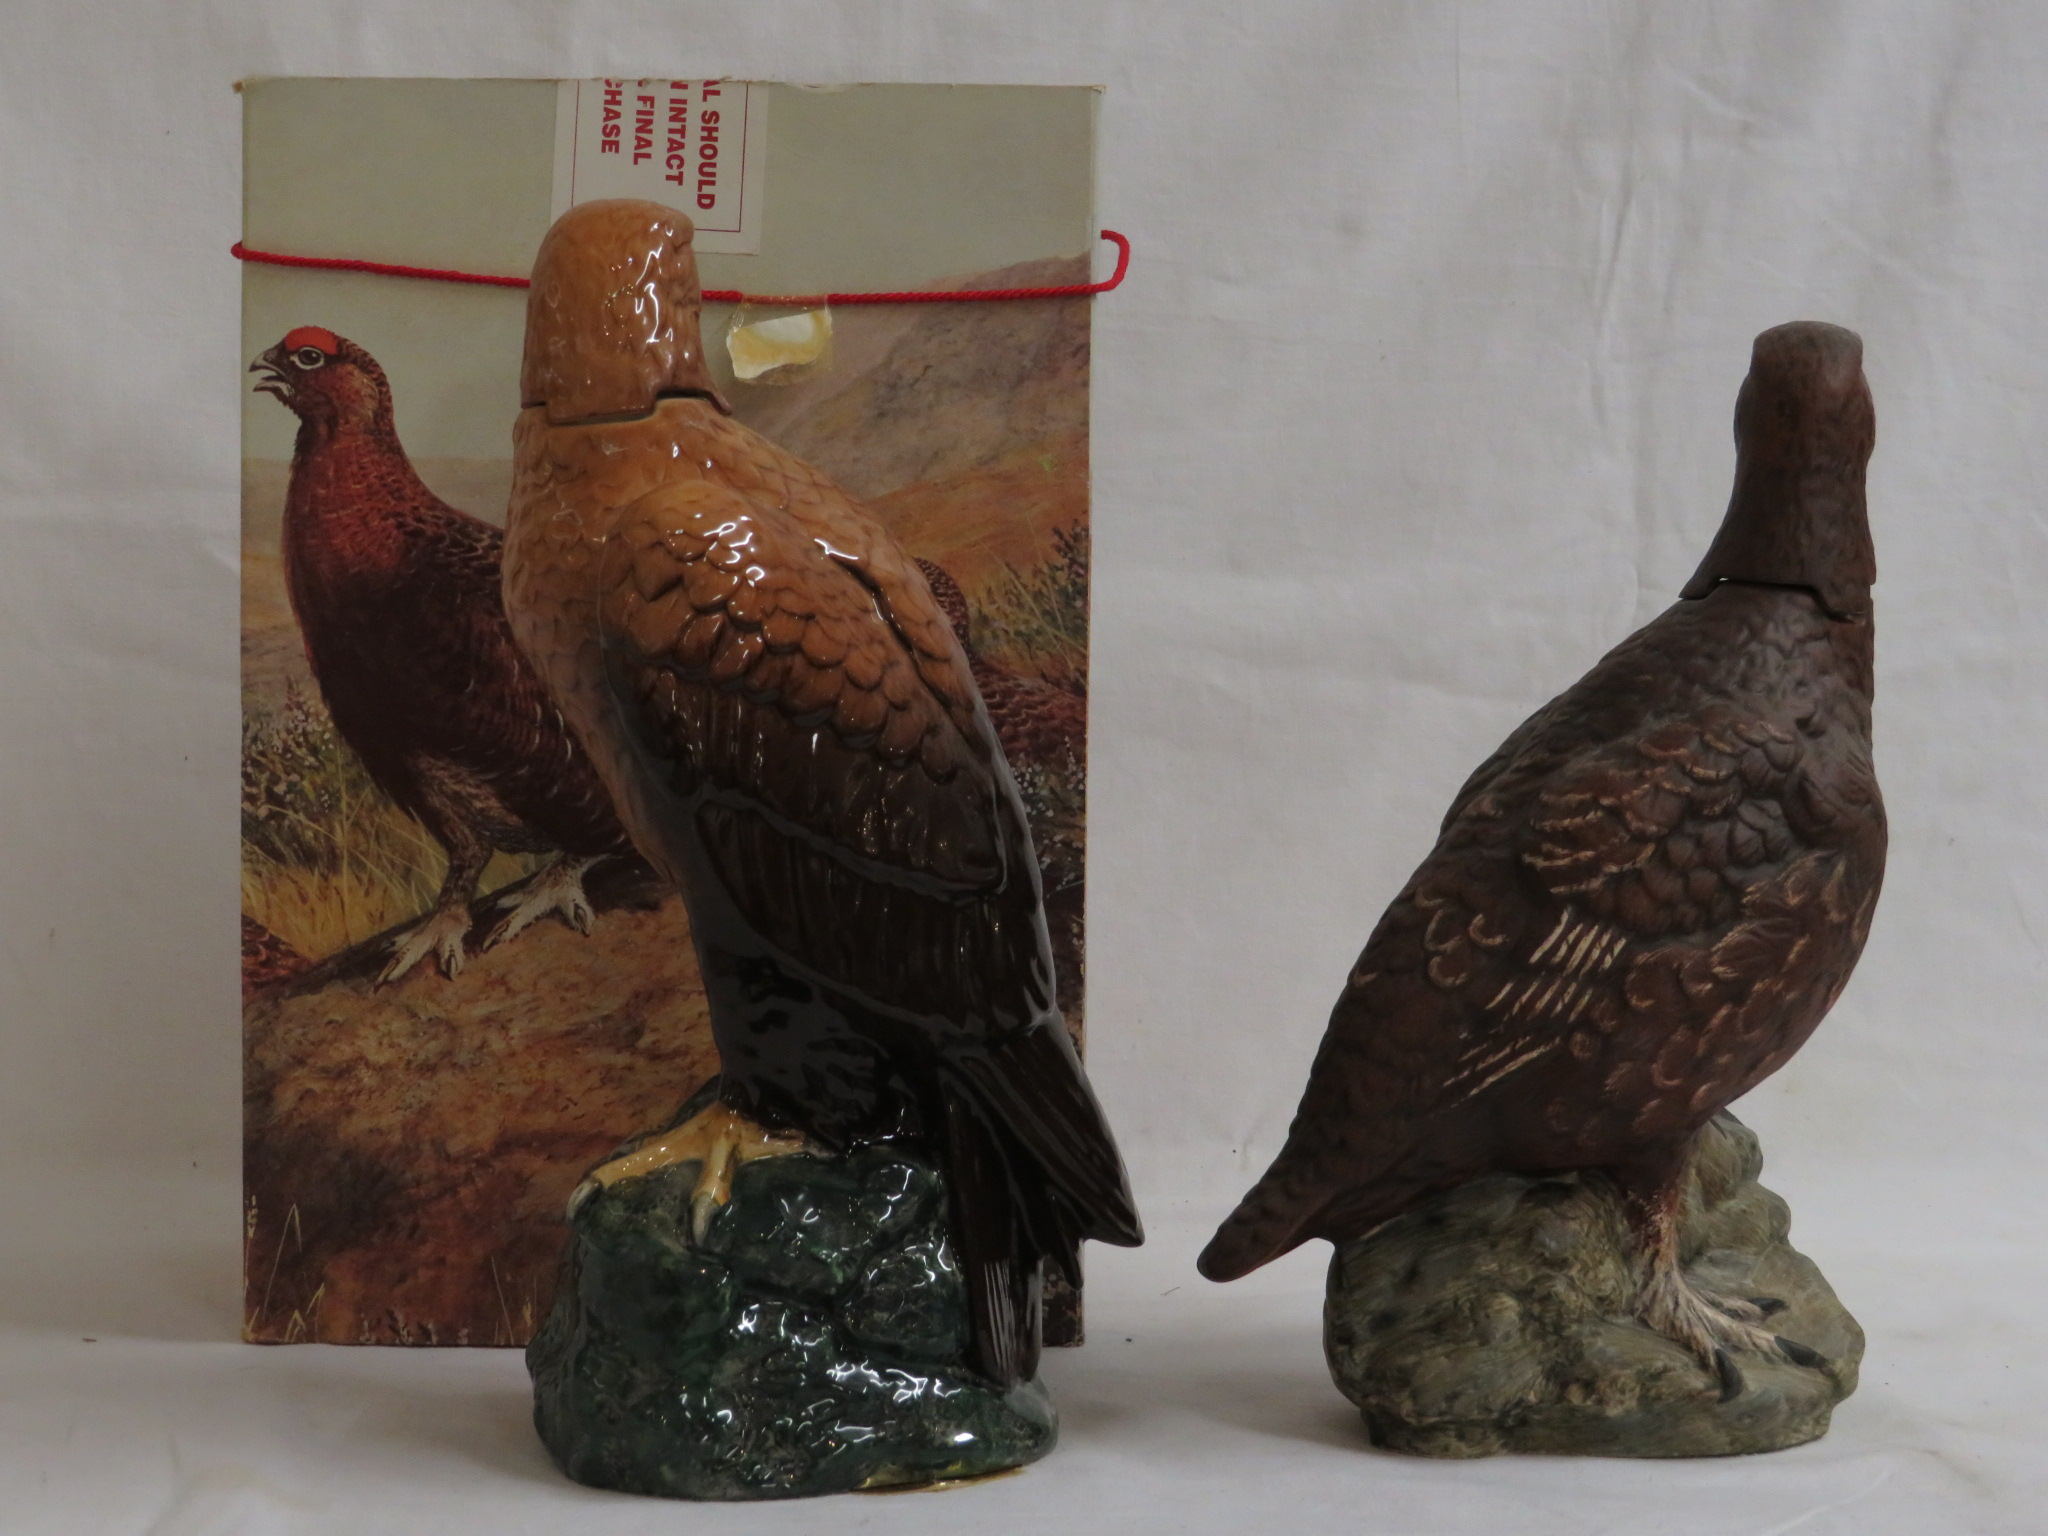 Lot 57 - Boxed Royal Doulton Scotch whisky decanter 'The Famous Grouse finest Scotch whisky', 70cl; and Royal